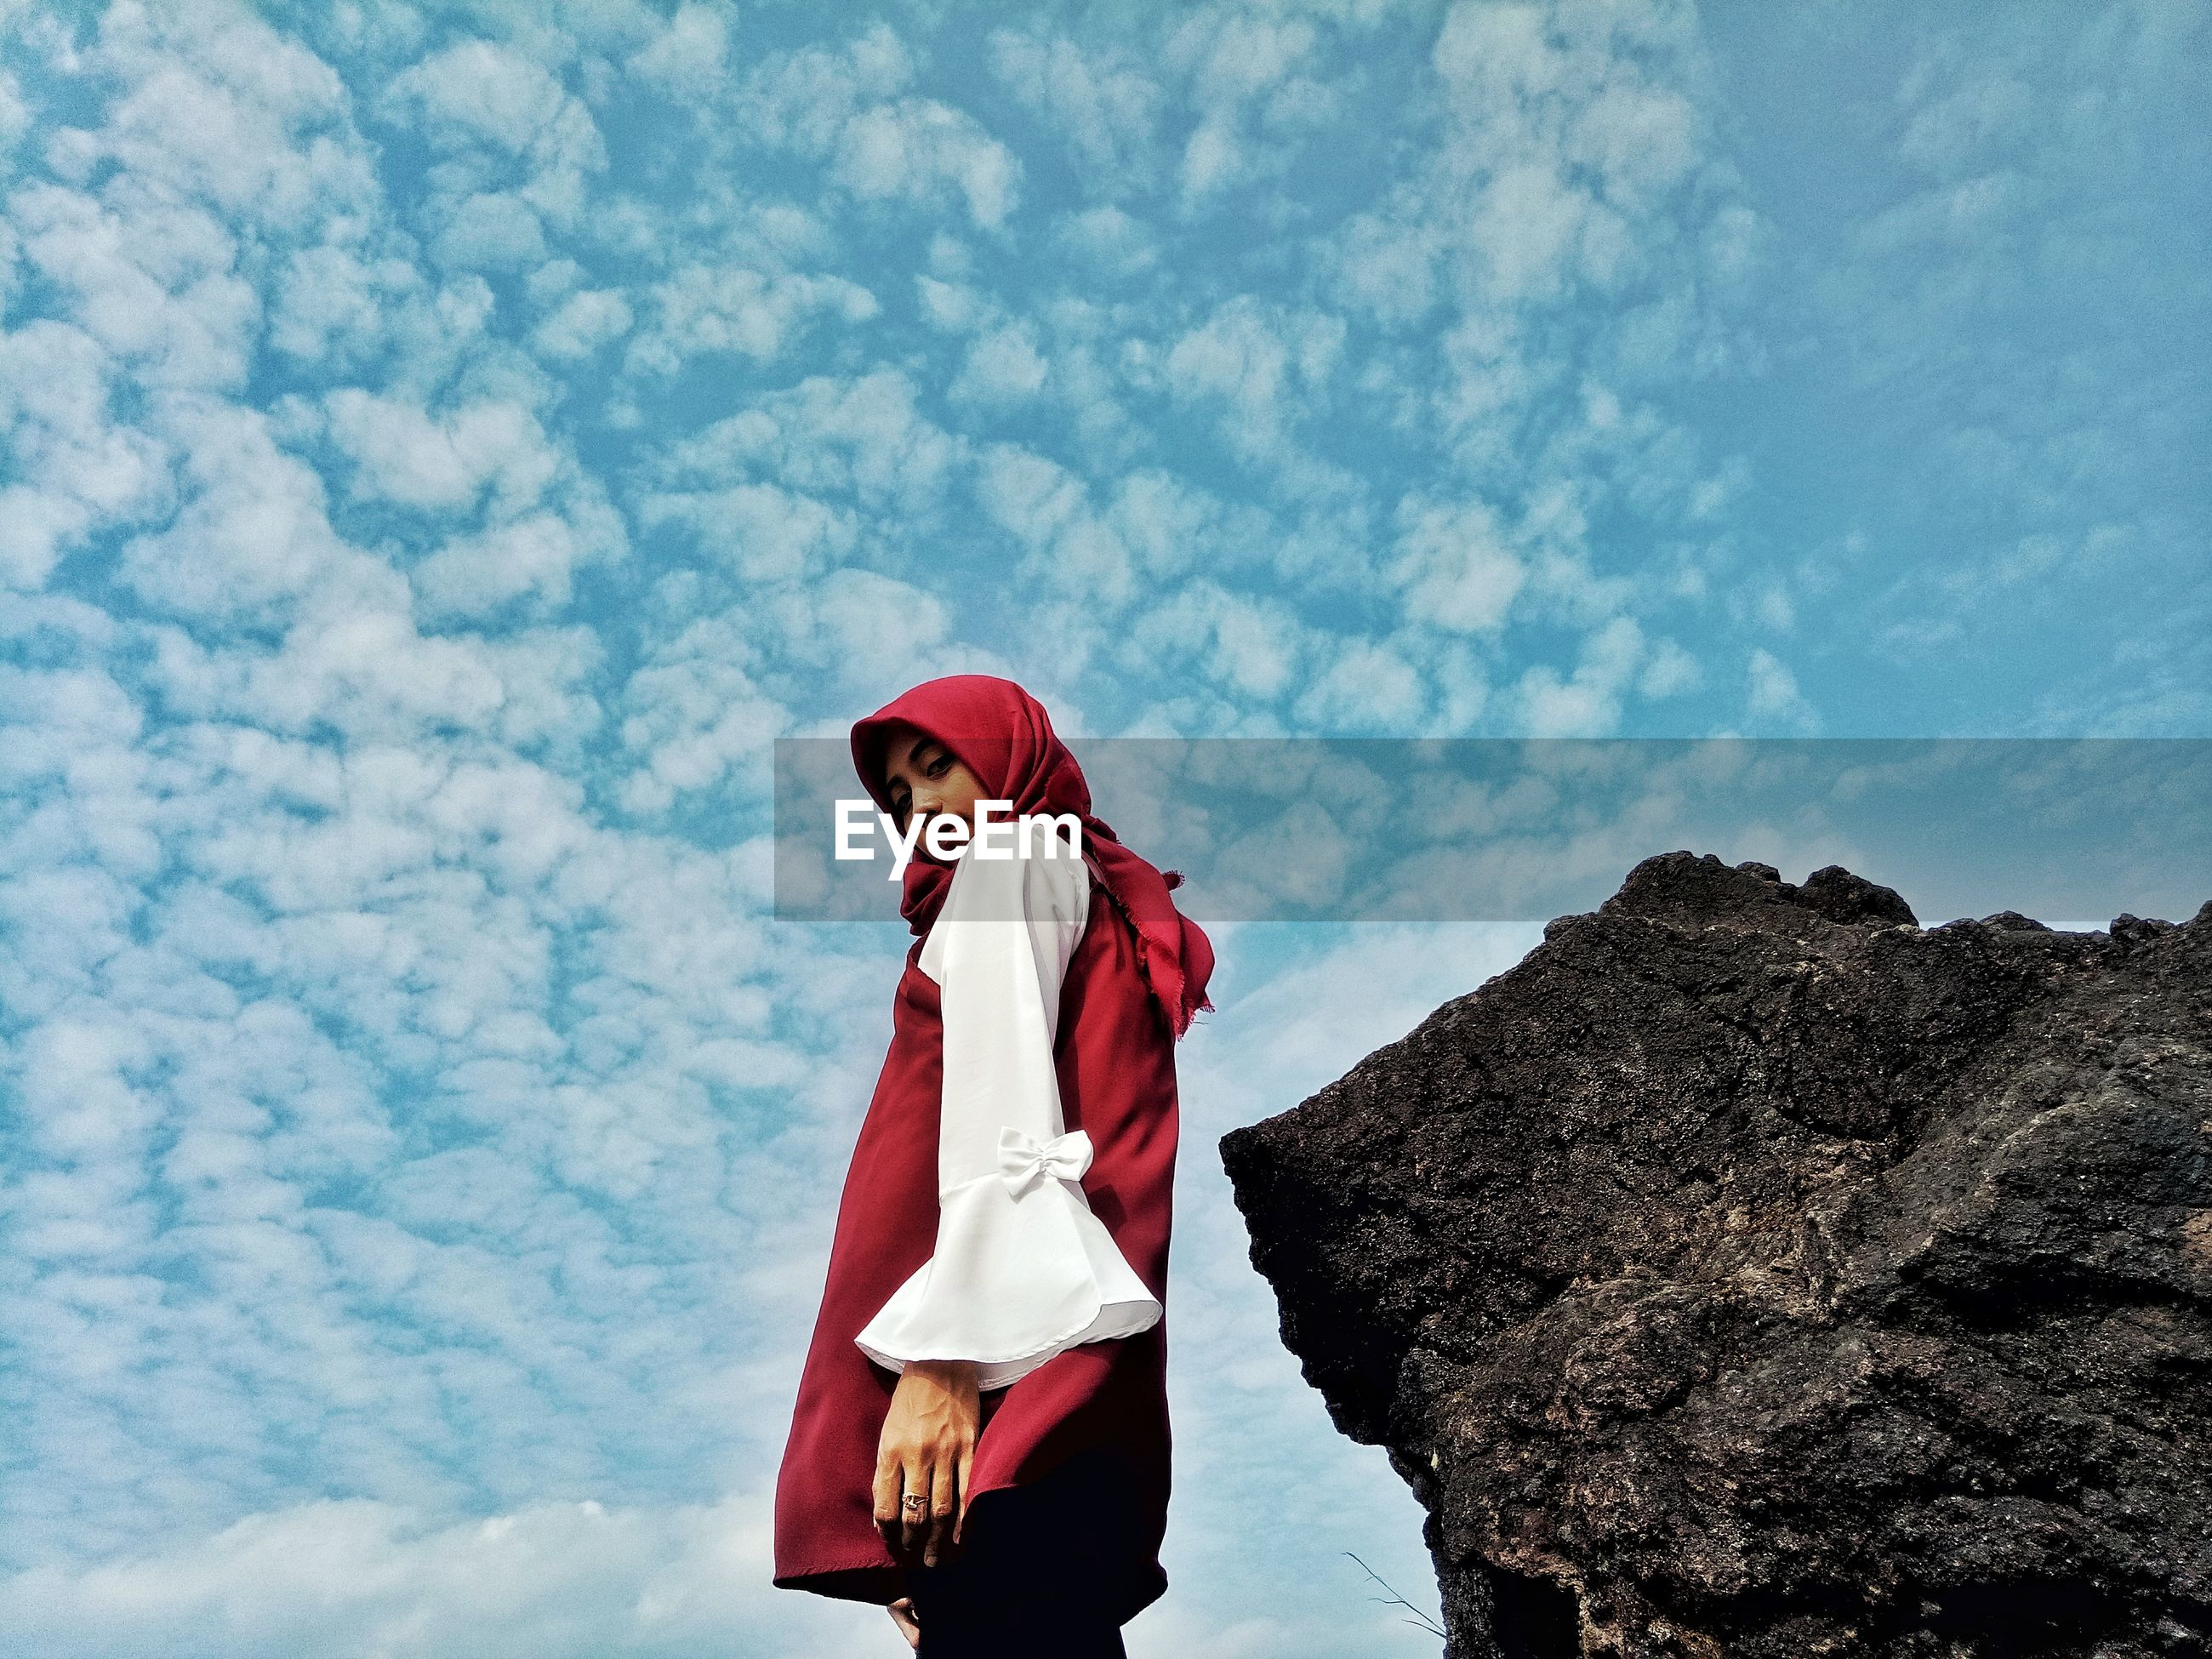 Low angle portrait of girl wearing hijab standing by rock against cloudy sky